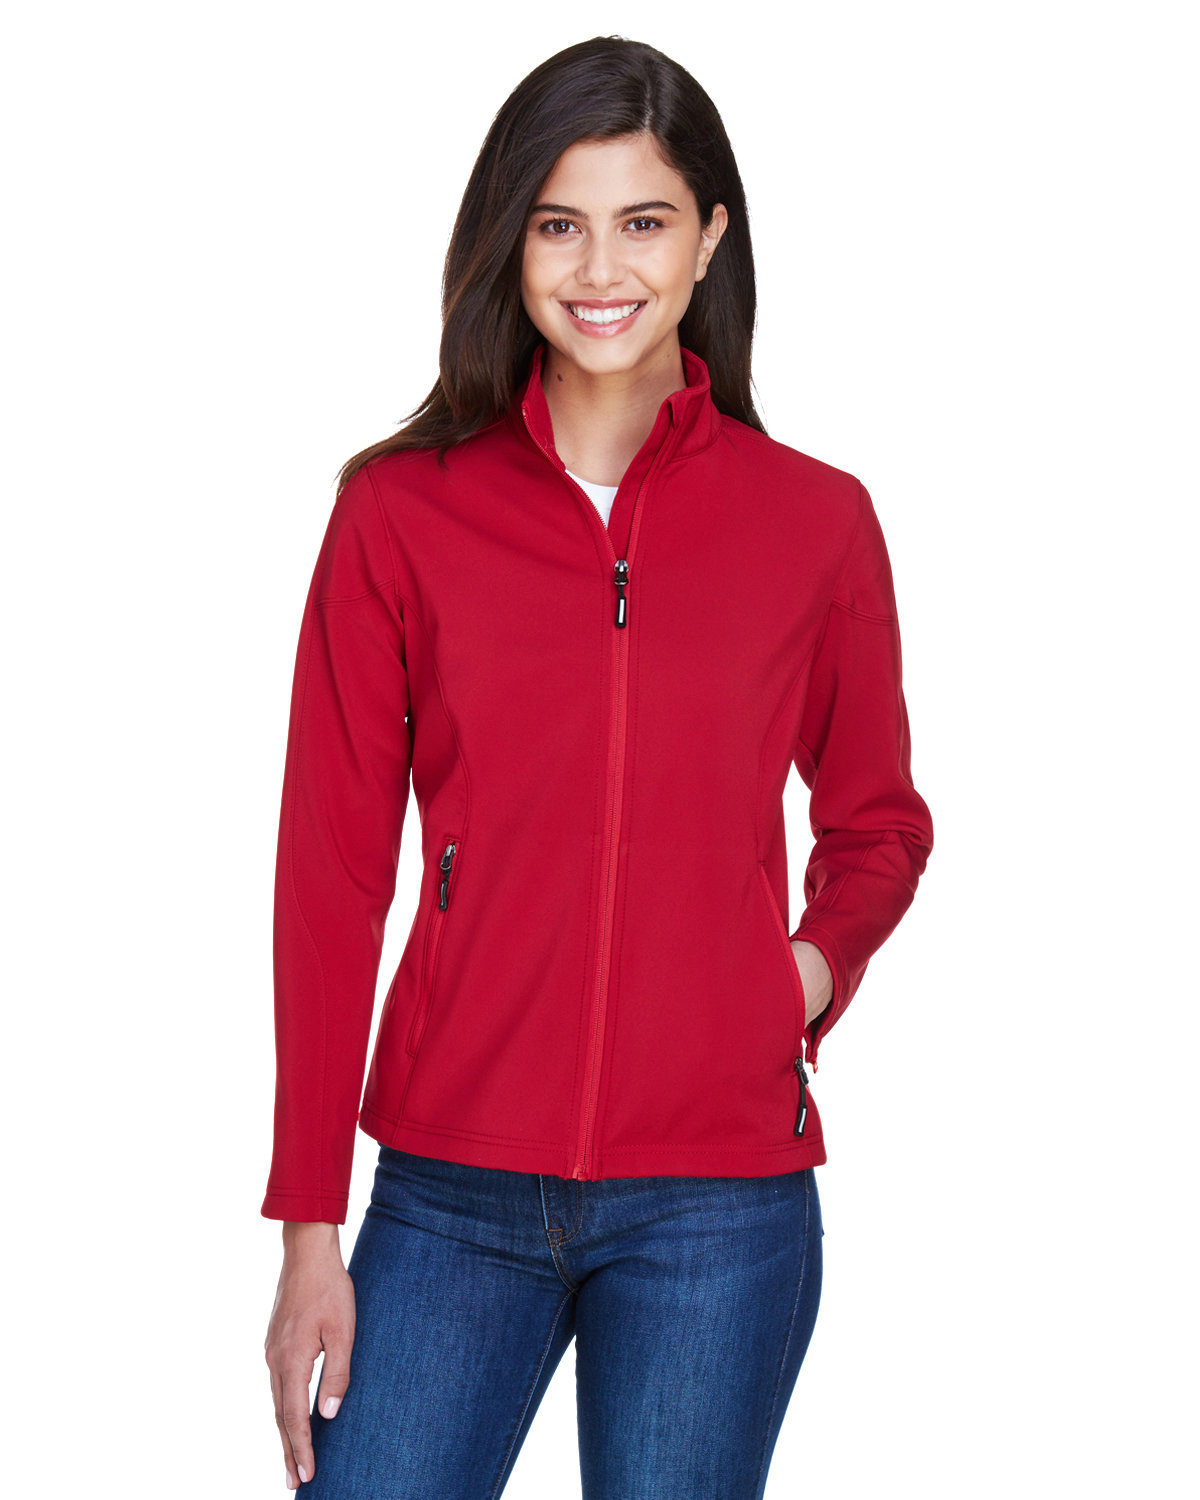 Core 365 Ladies' Cruise Two-Layer Fleece Bonded SoftShell Jacket CLASSIC RED